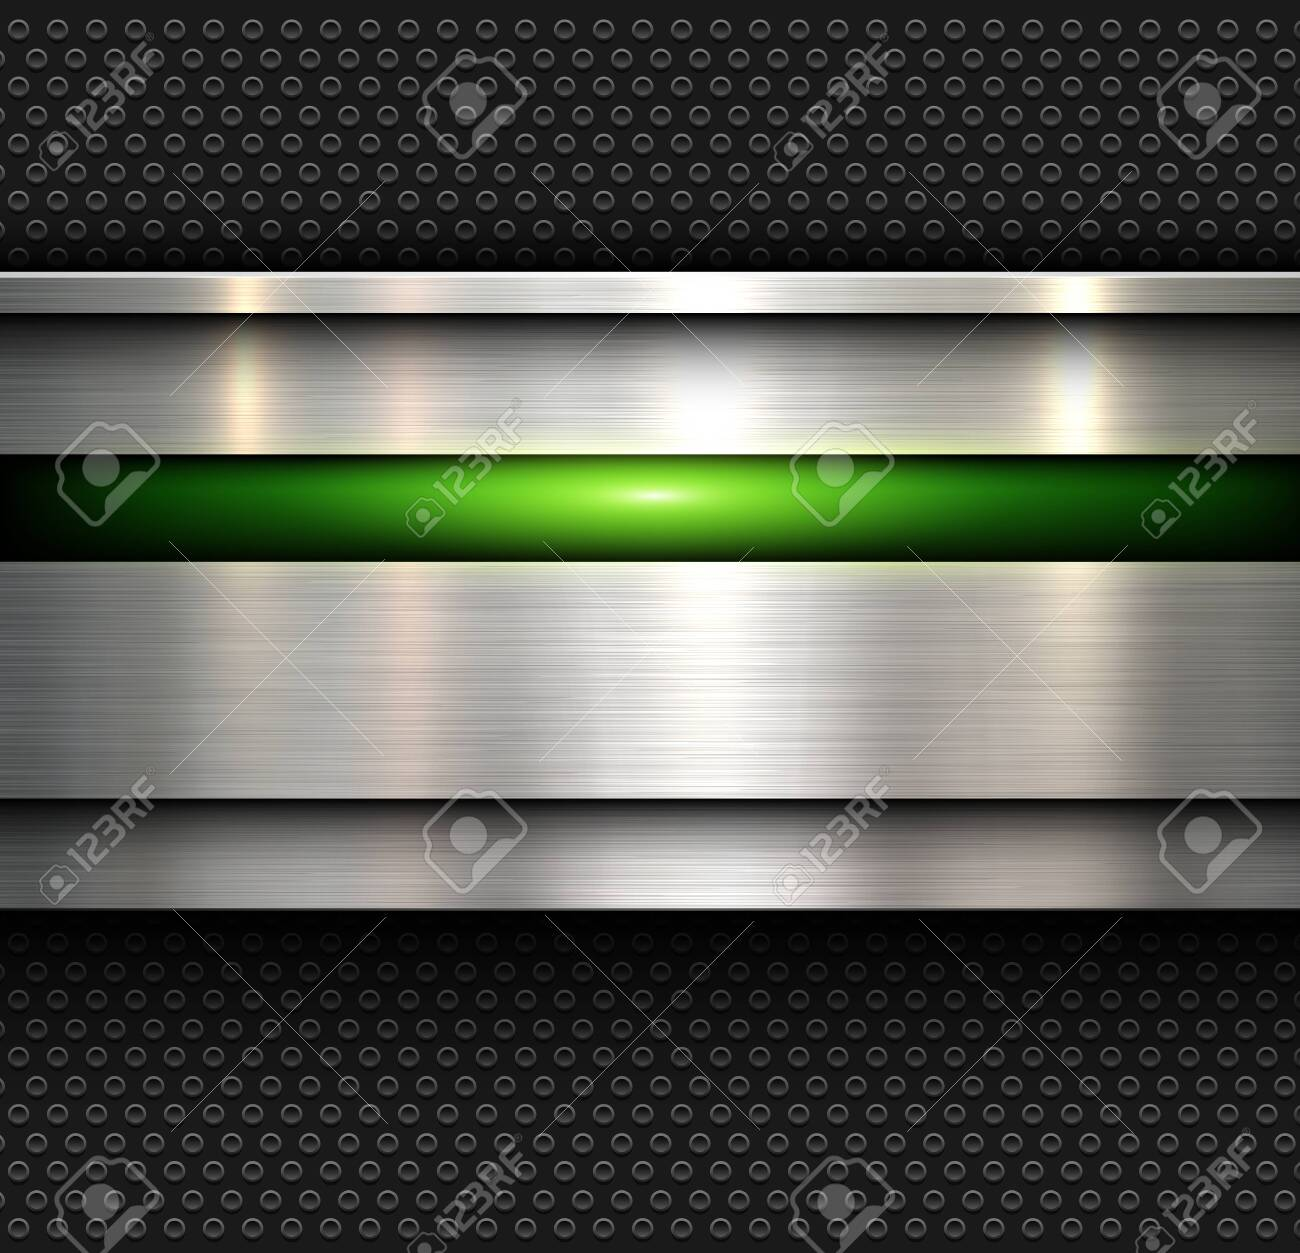 Background, polished metal texture with holes pattern textured backdrop, vector illustration. - 140878960